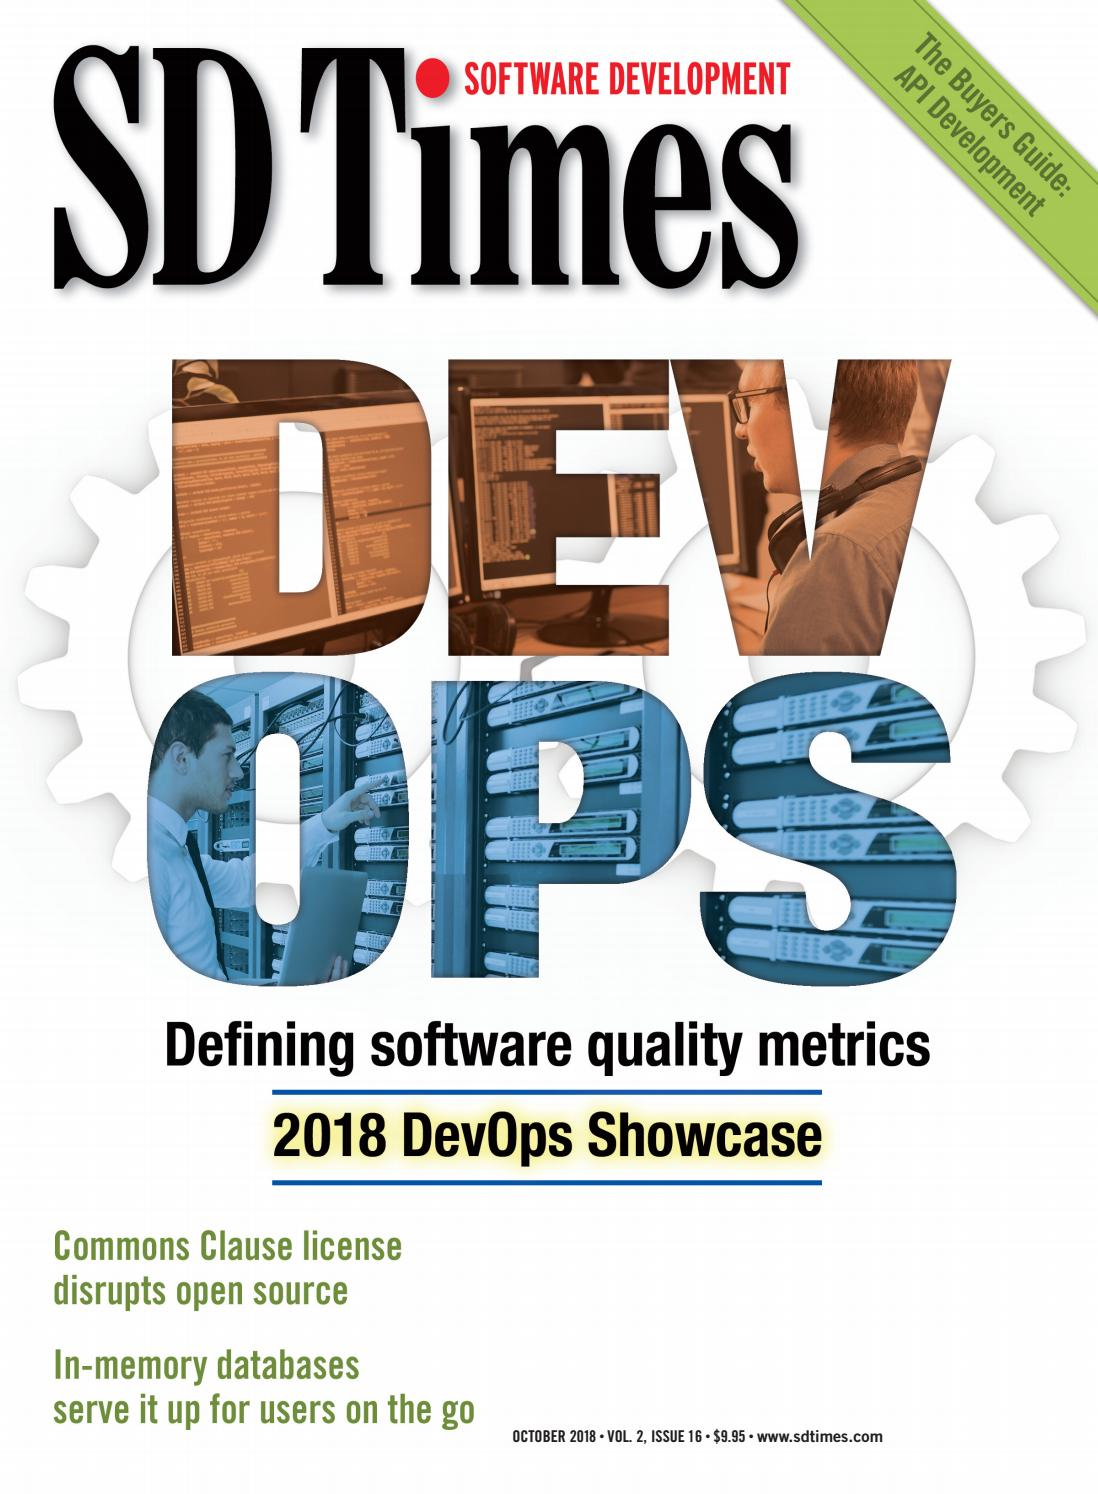 SD Times - October 2018 by d2emerge - issuu